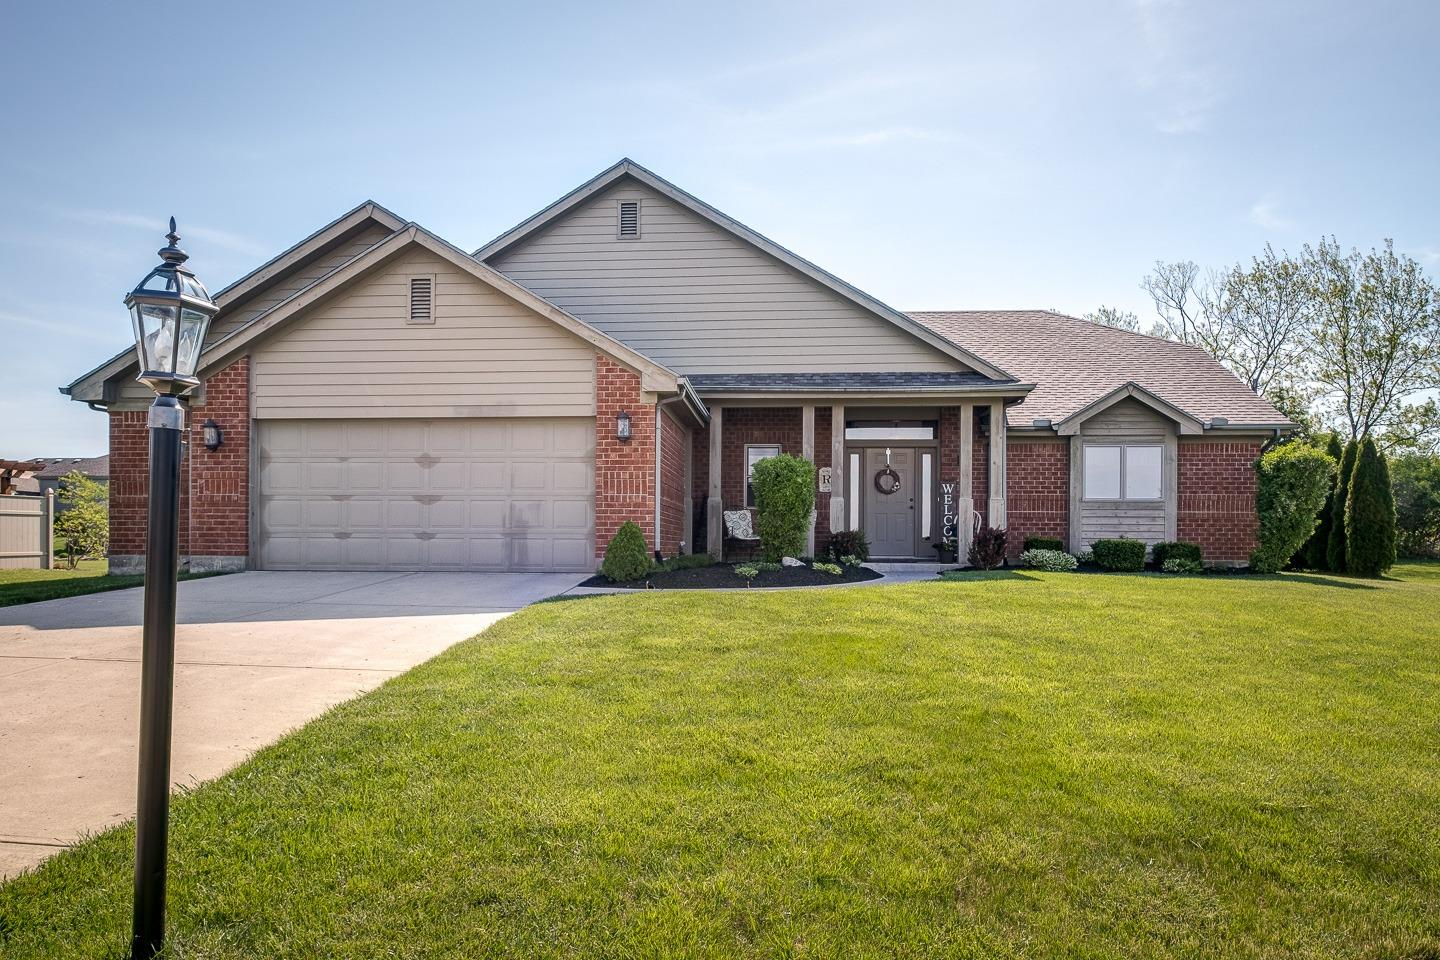 389 Christopher Dr Clear Creek Twp., OH